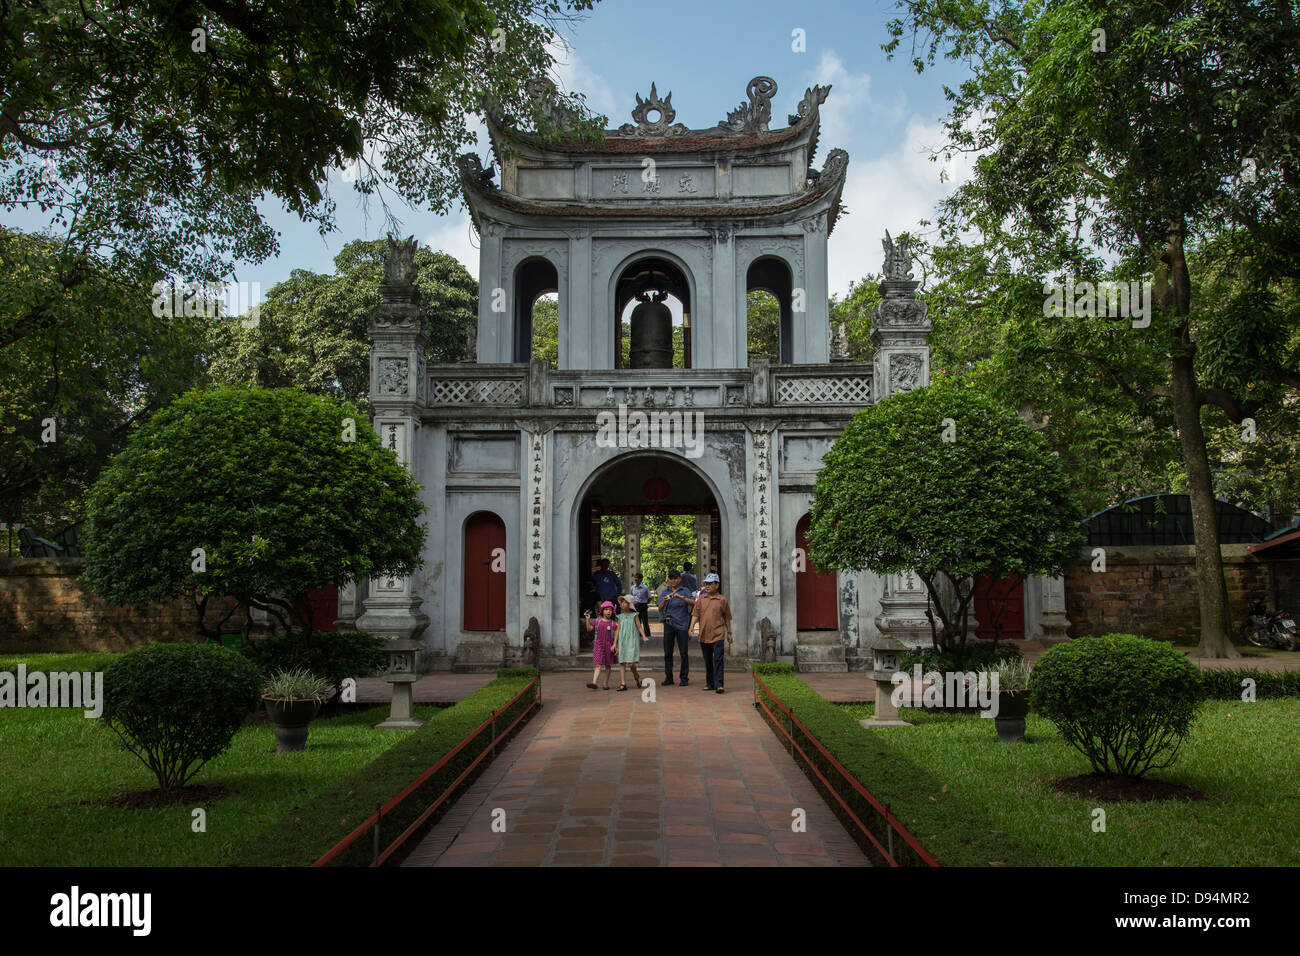 The Temple of Literature is Confucian temple which was formerly a center of learning in Hanoi. Stock Photo